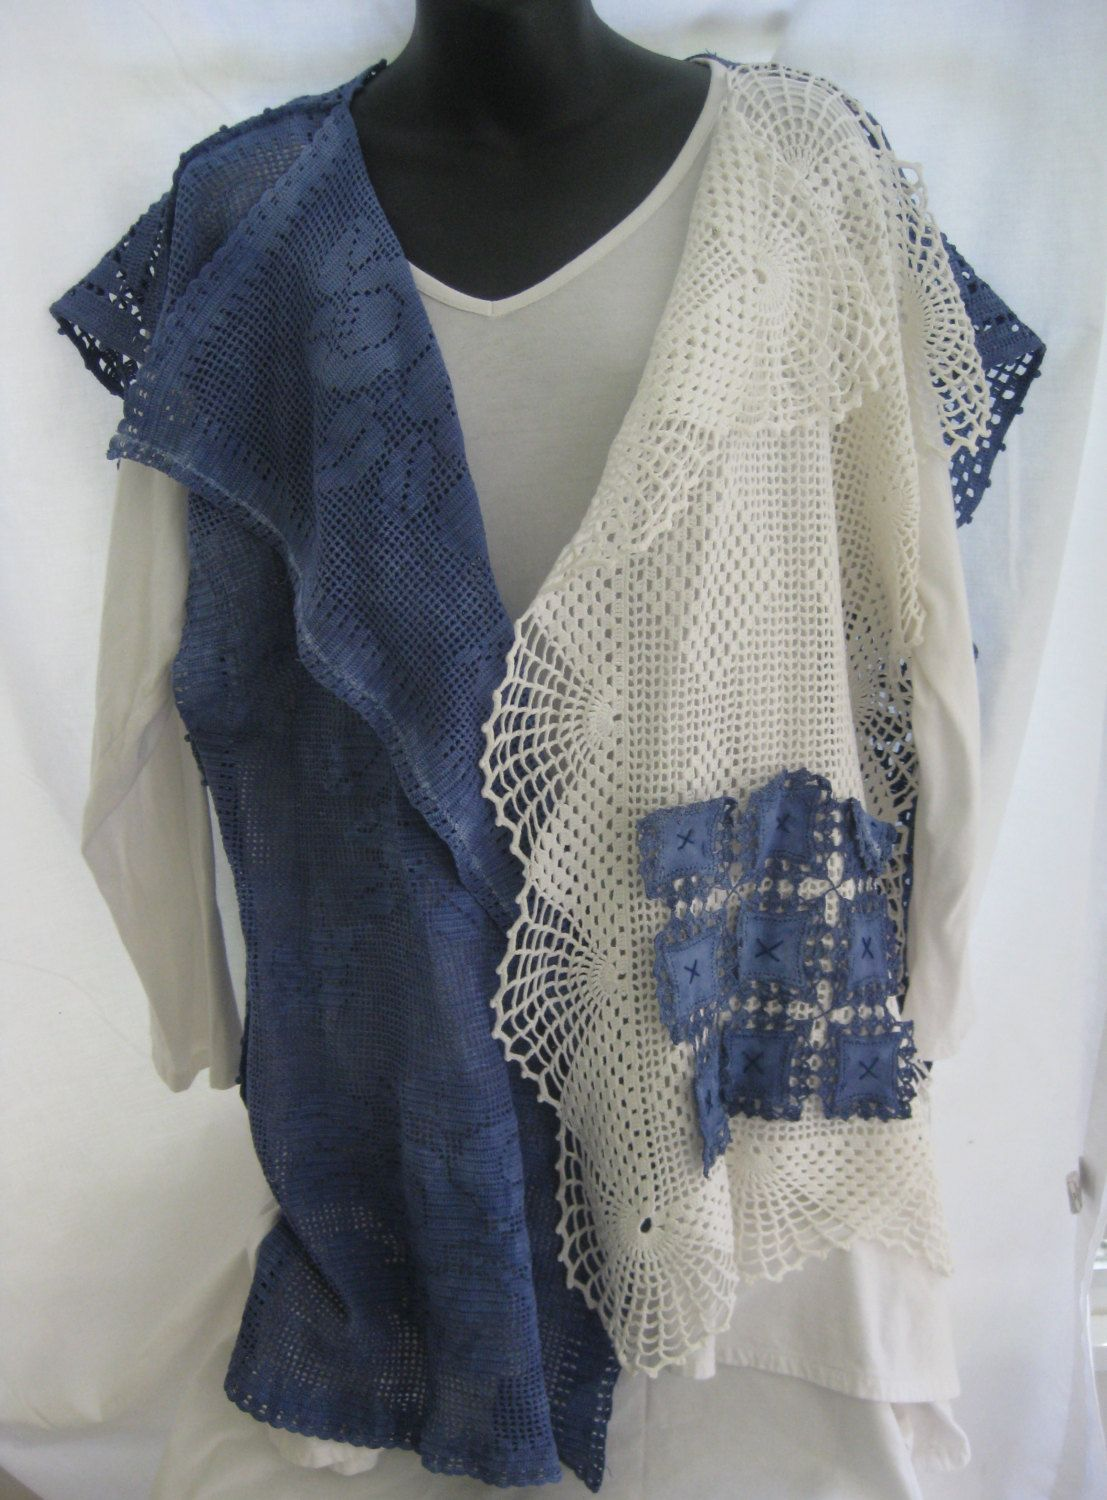 Plus size blue and white vintage crochet hand dyed cardigan vest, repurposed vintage linens, boho, up-cycled trendy lace, magnolia pearl by thelavenderpear on Etsy